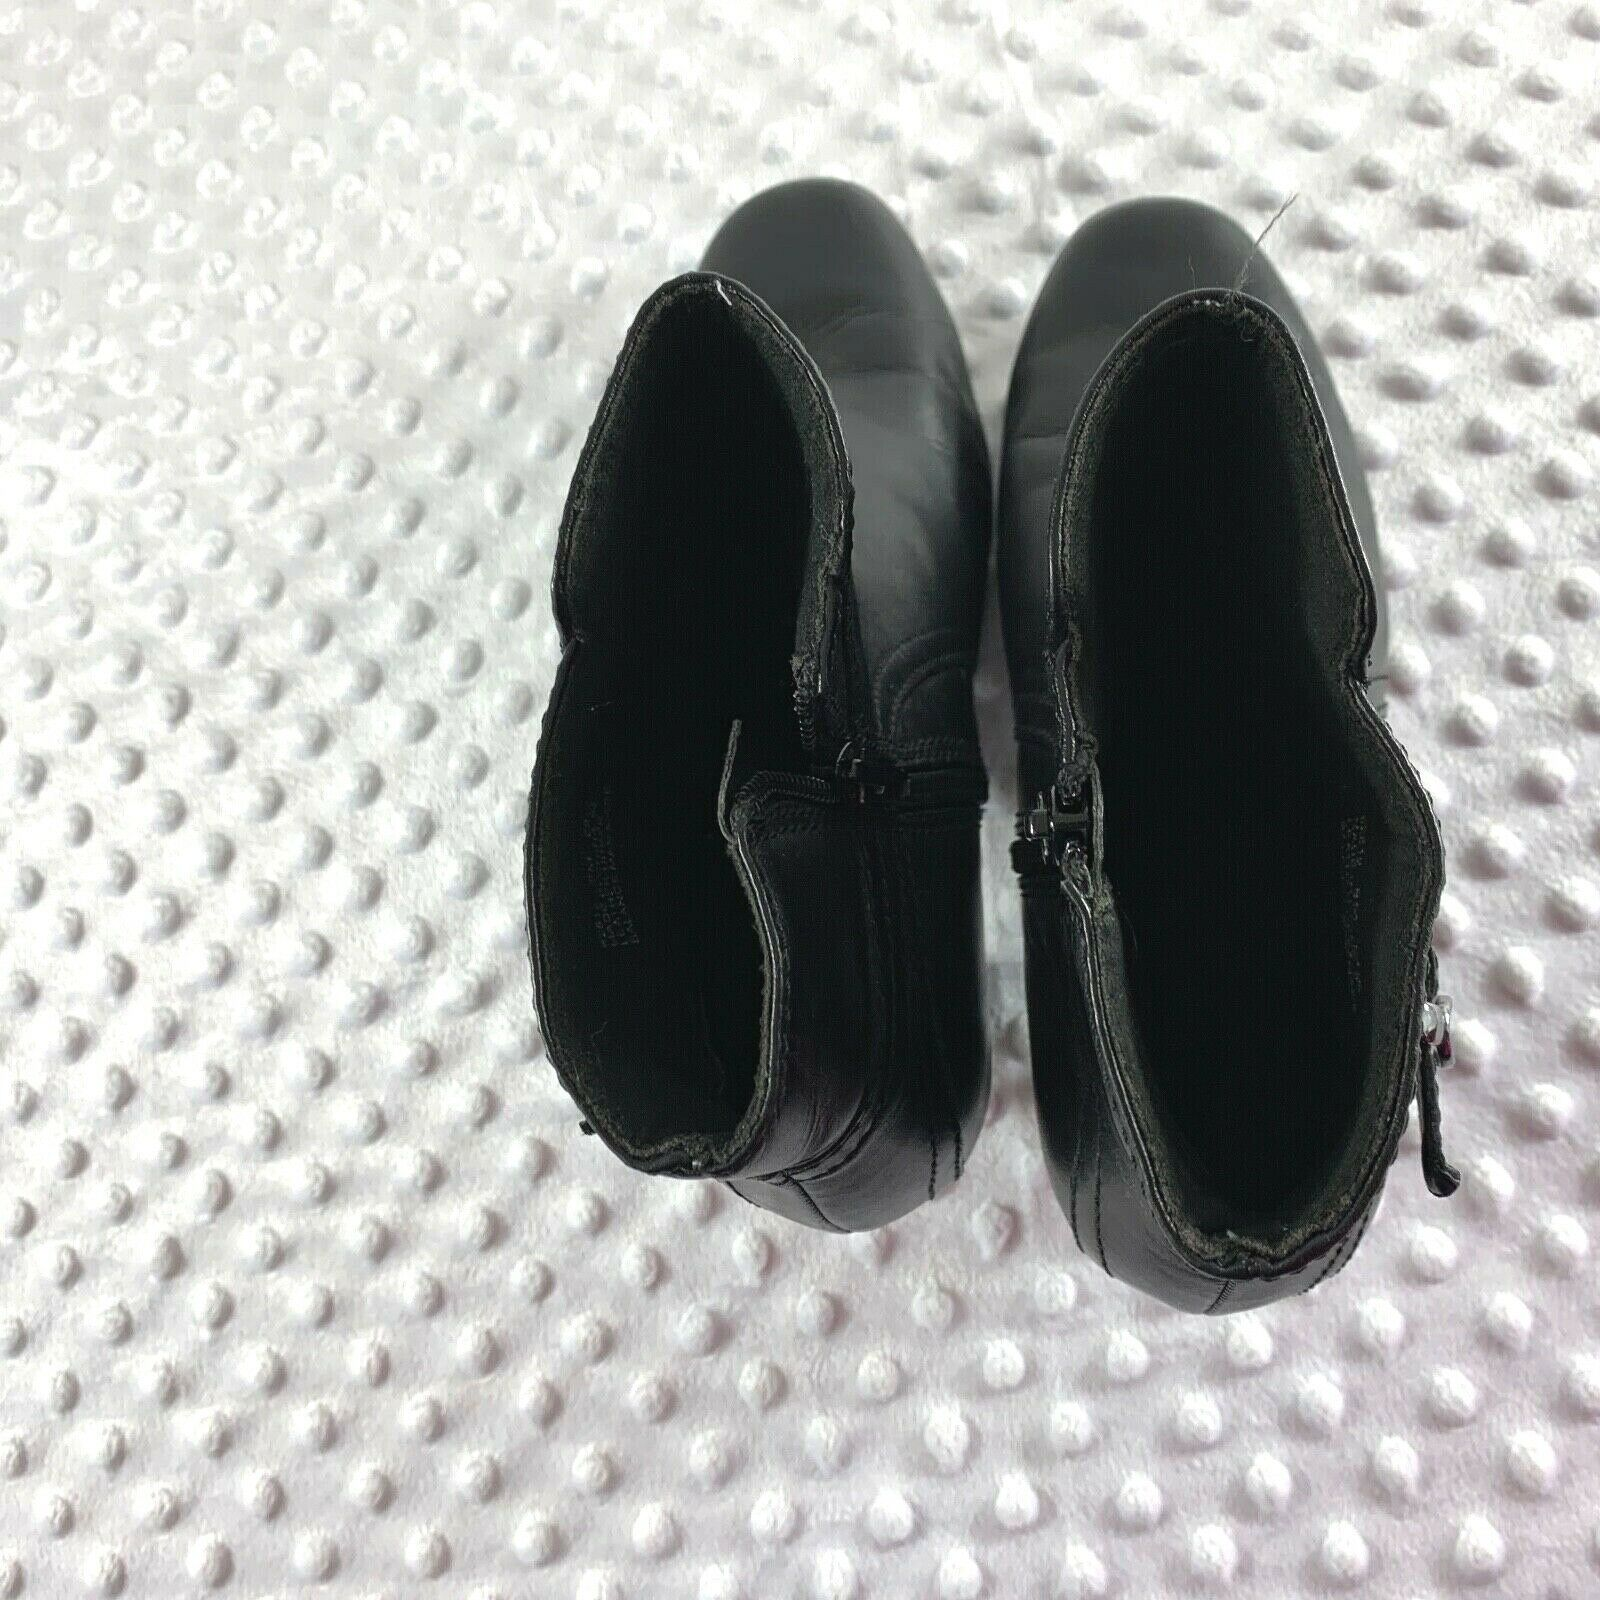 Clarks Sz 8 M Womens Black Side Zip Ankle Booties Shoes image 5